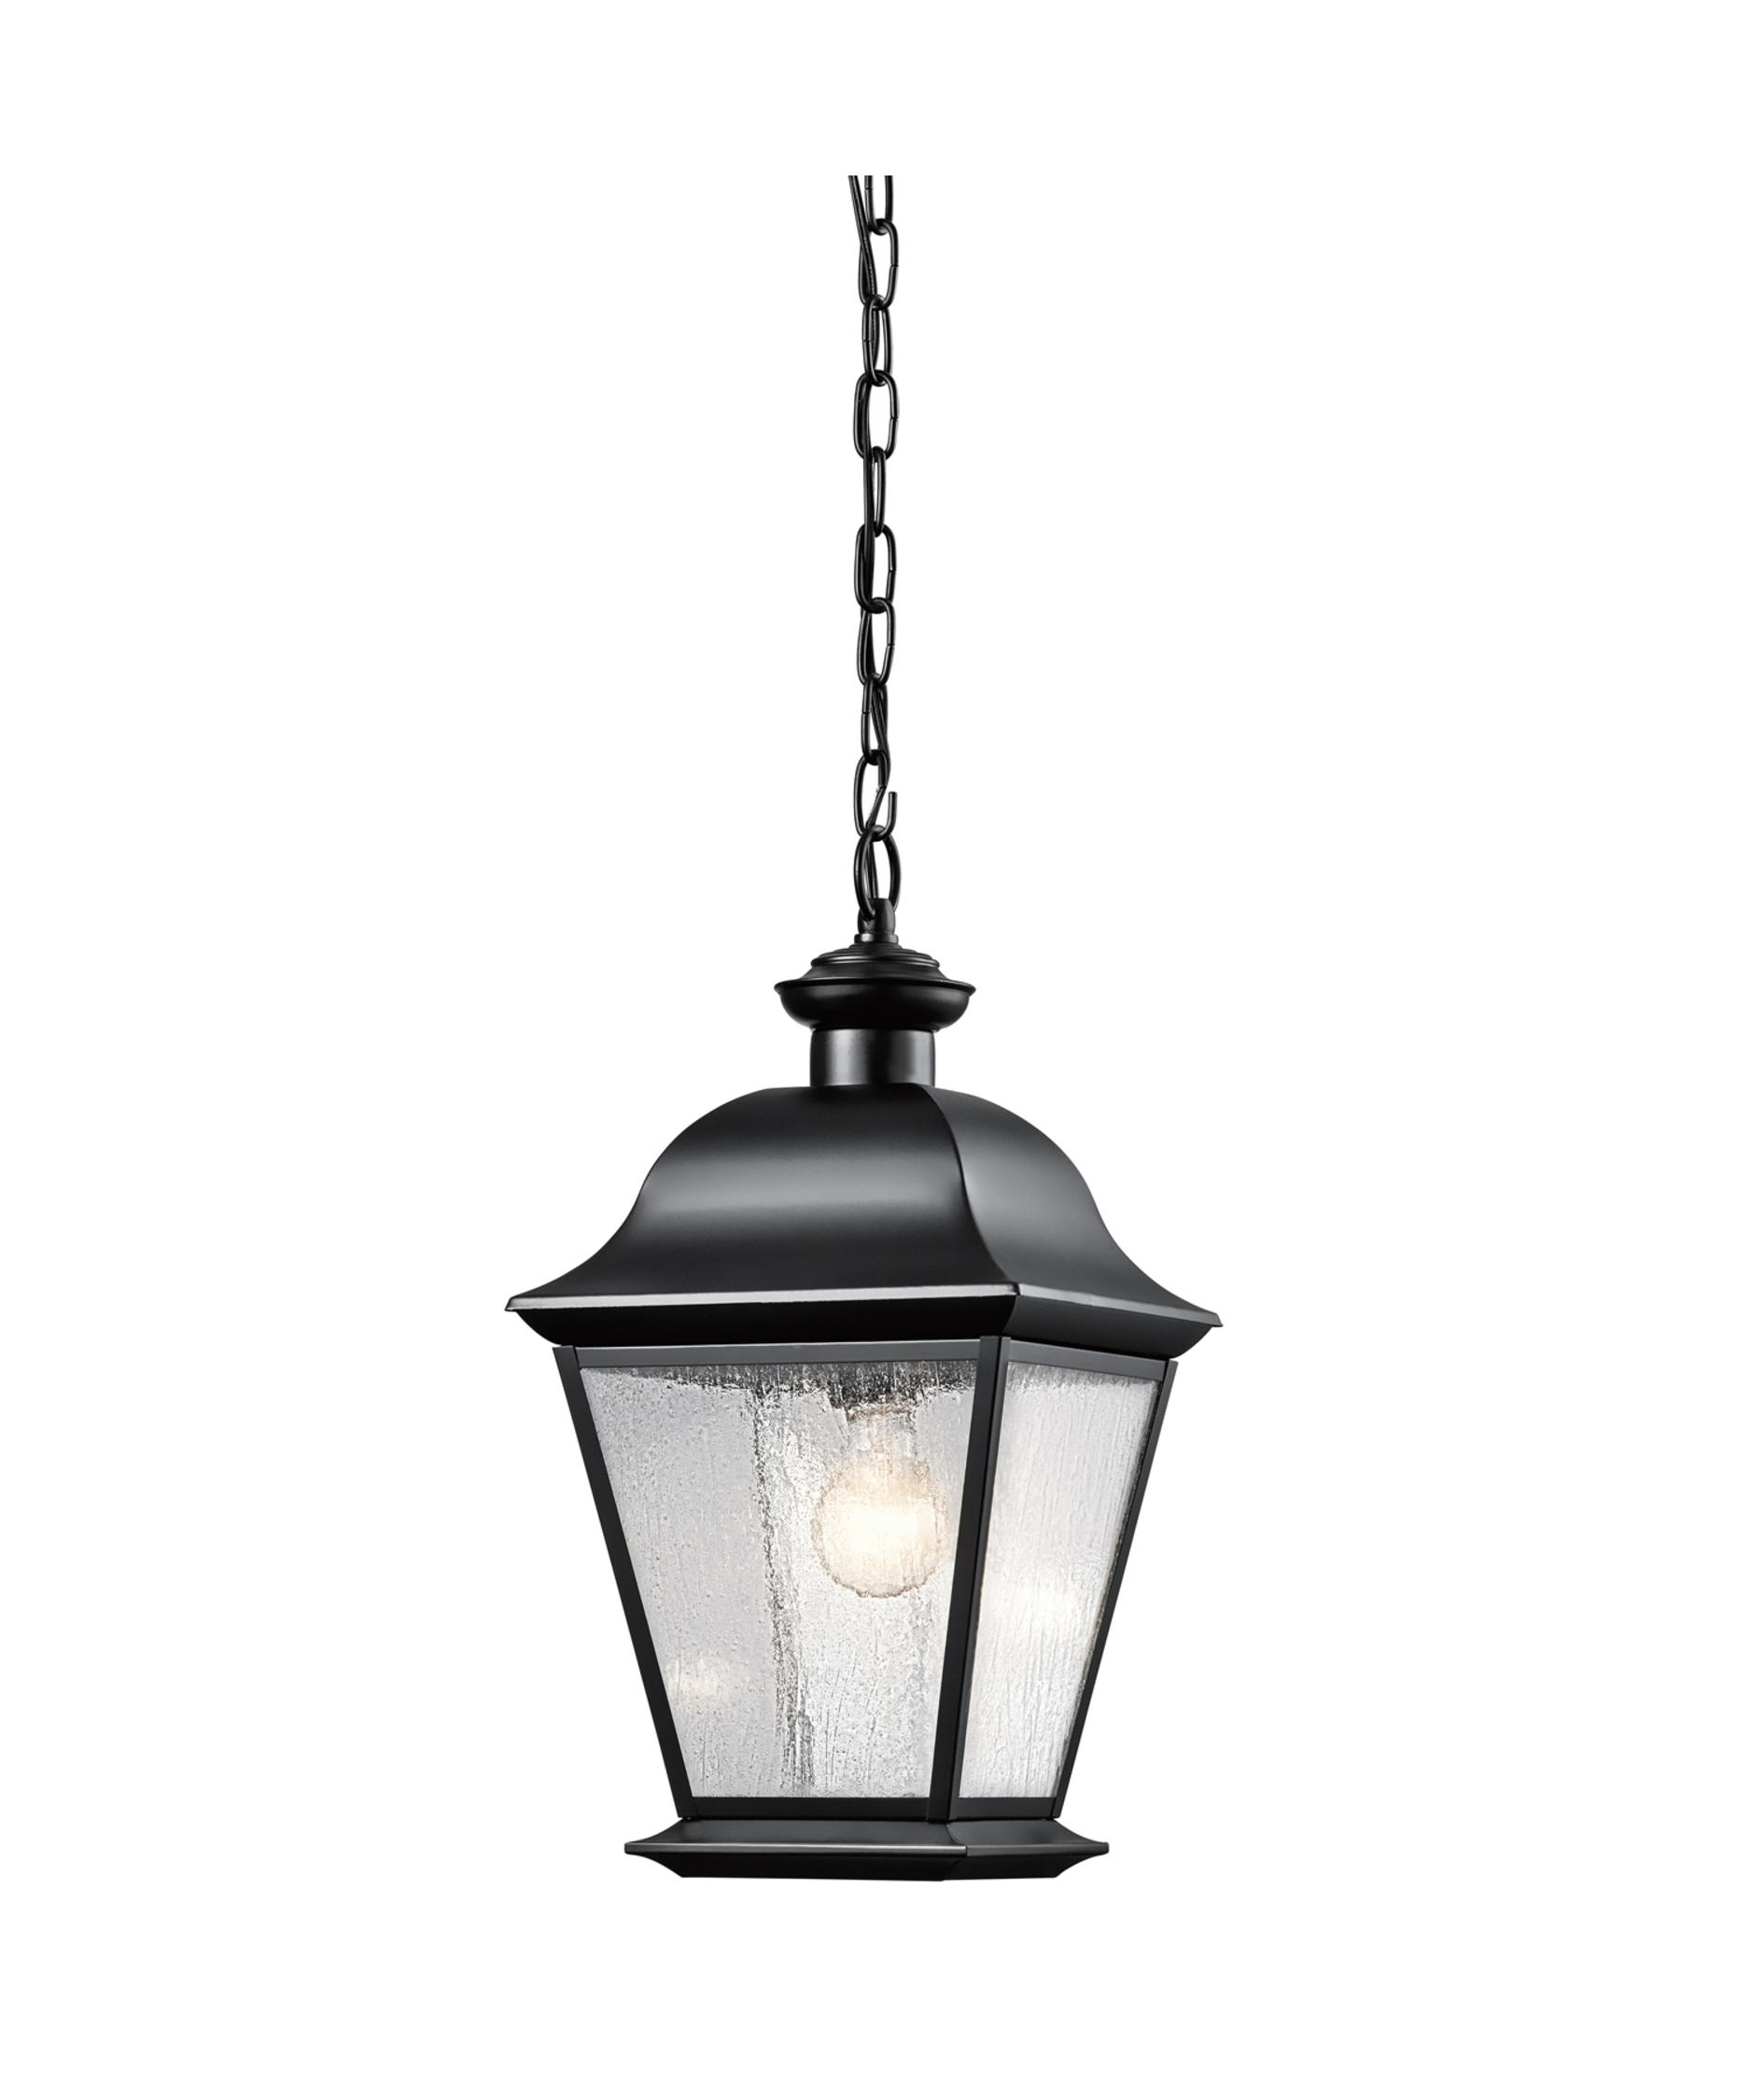 Best And Newest Kichler 9809 Mount Vernon 10 Inch Wide 1 Light Outdoor Hanging Intended For Outdoor Hanging Light In Black (Gallery 10 of 20)